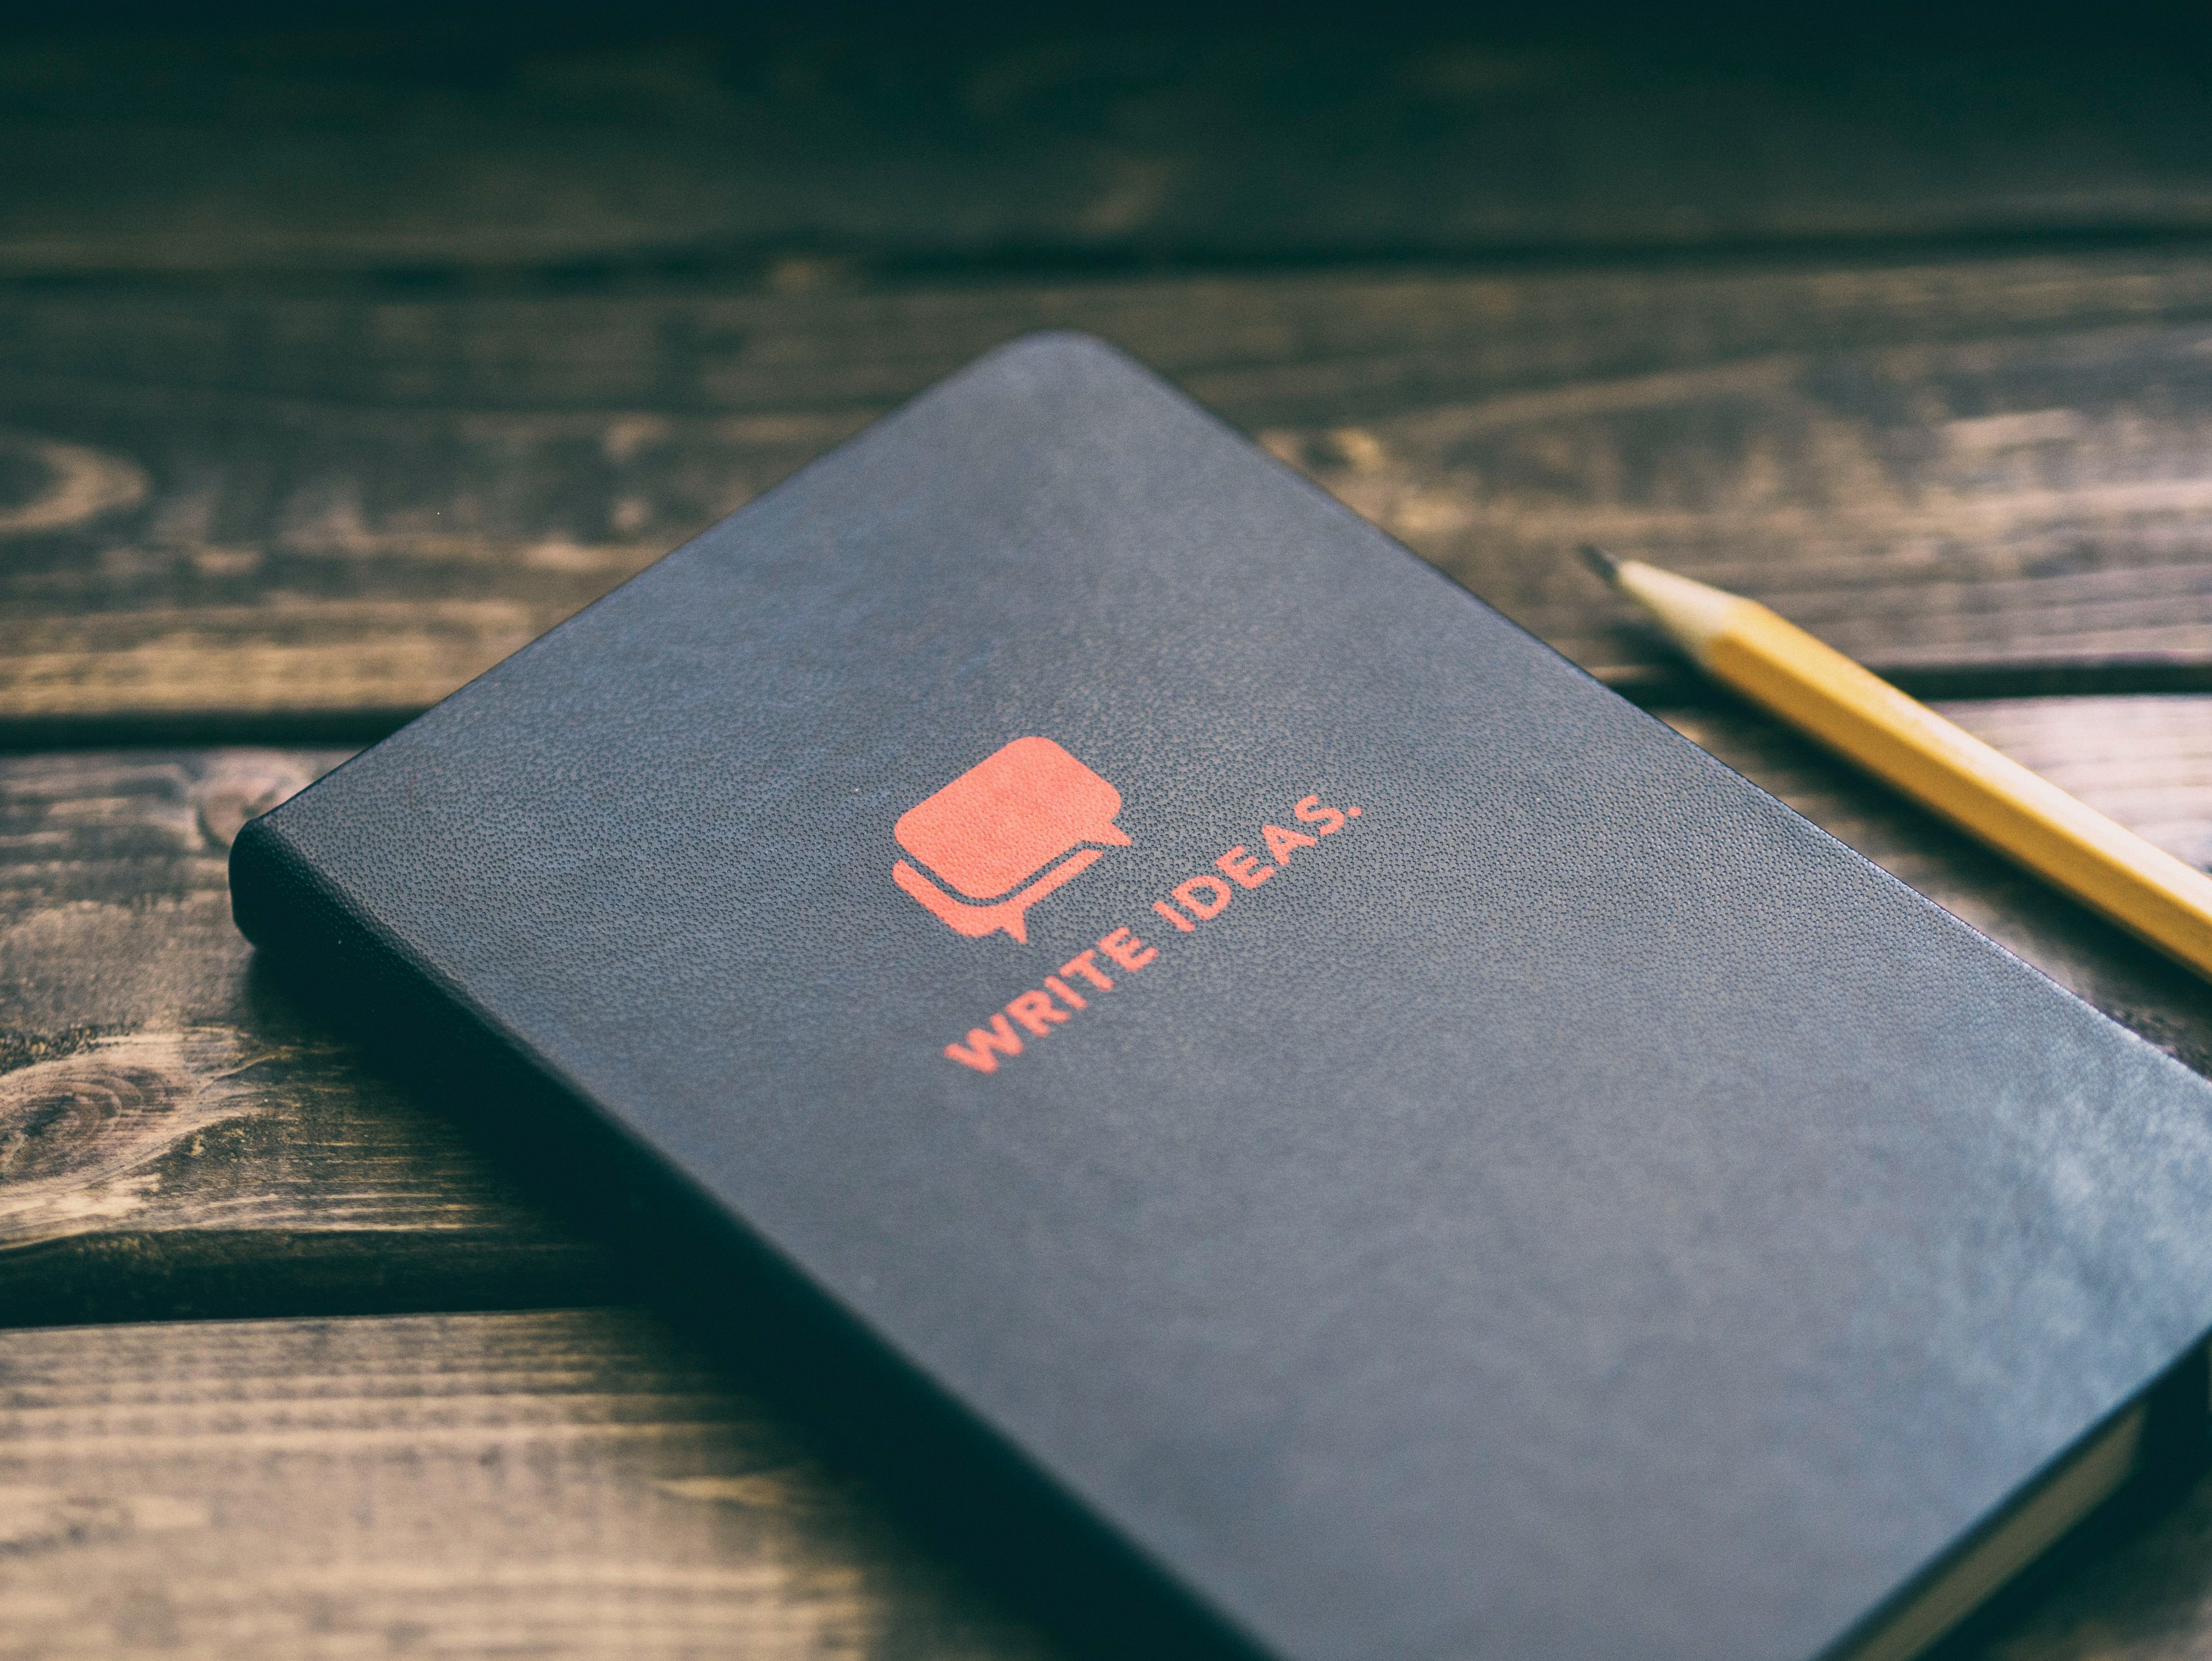 "A black notebook with red writing that says ""Write Ideas"" with two overlapping speech bubbles. Next to the notebook is a wooden pencil. The notebook and pencil are on top of a dark stained wooden surface with slats."